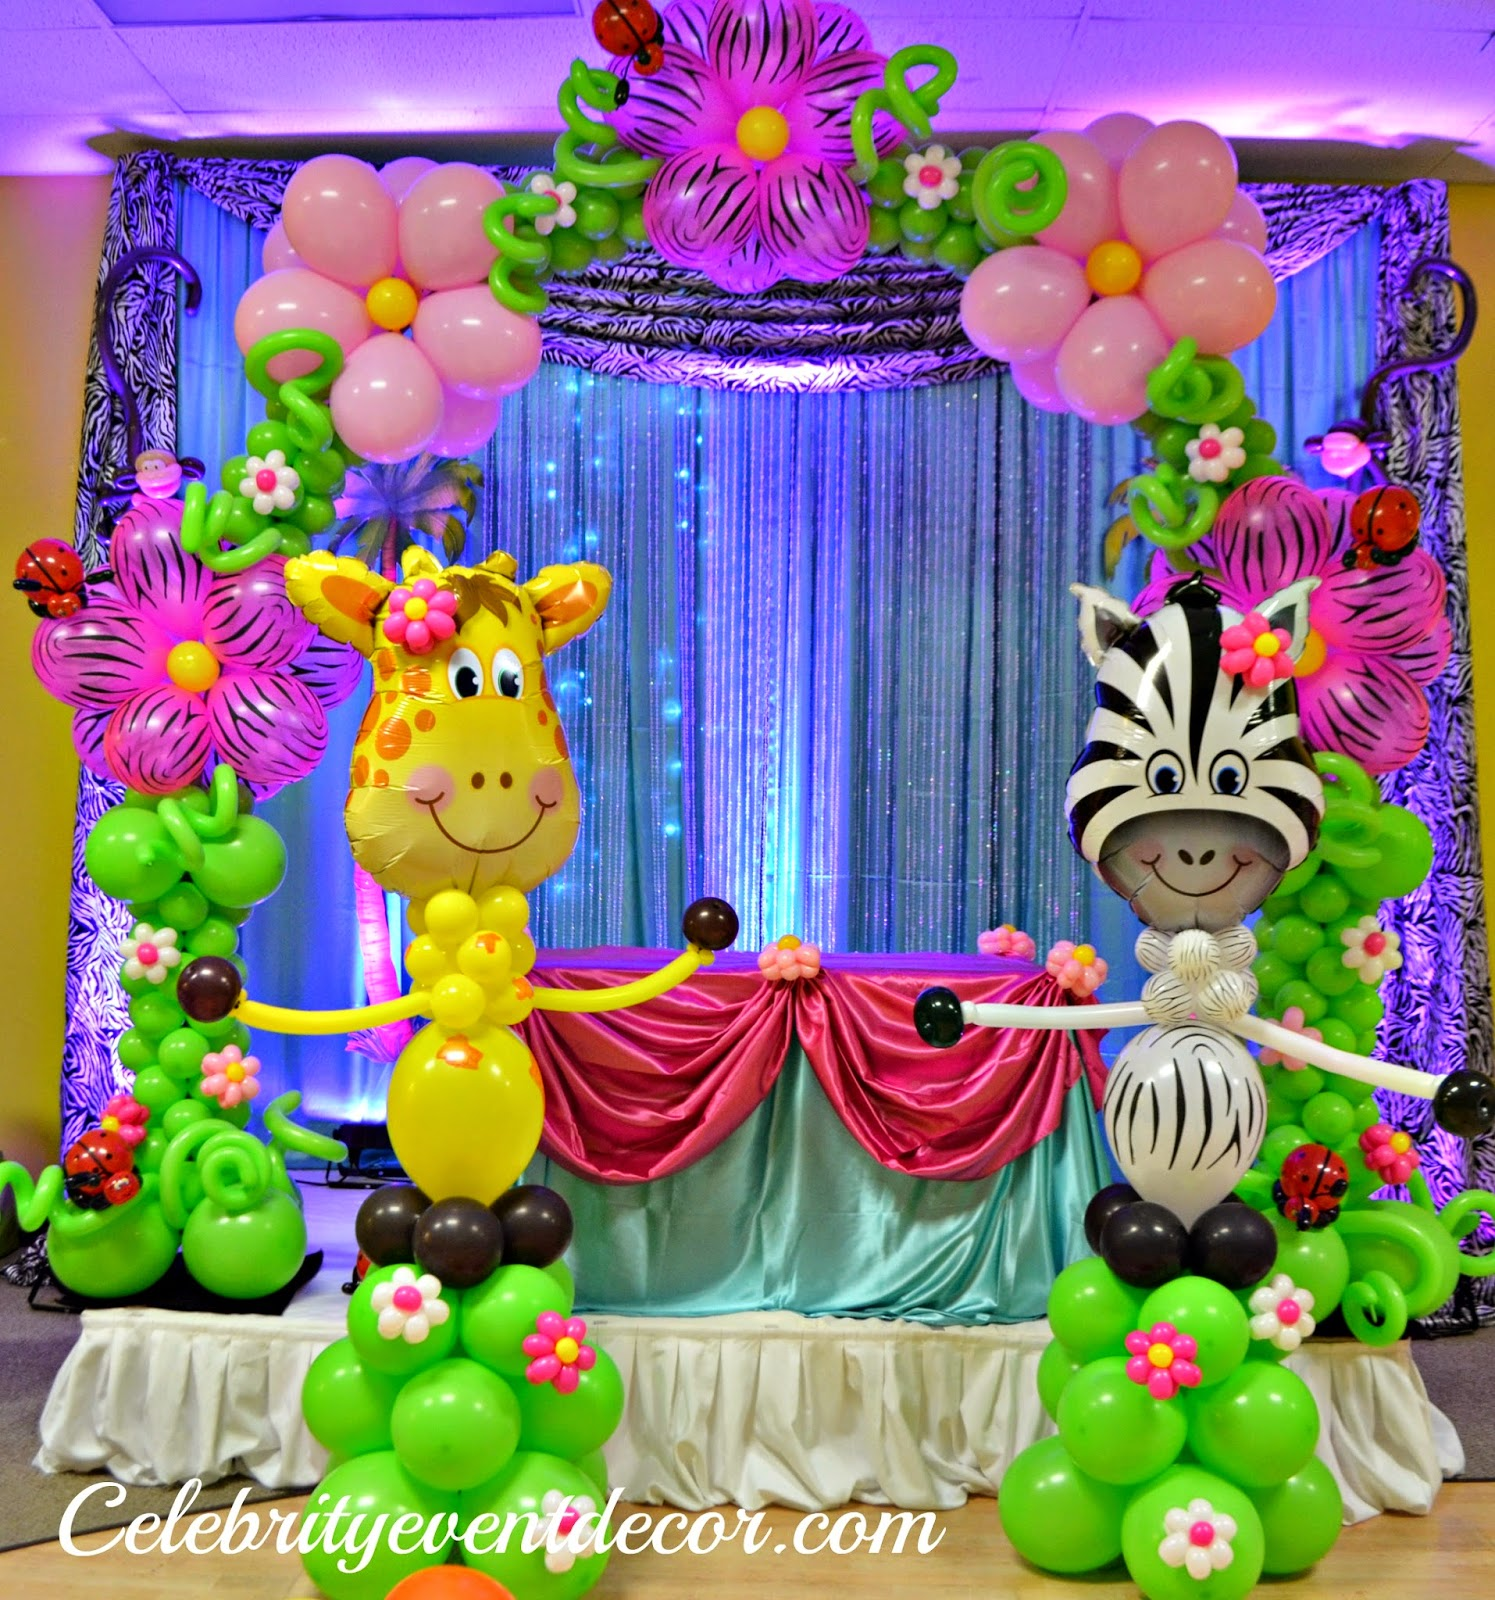 Celebrity Event Decor Banquet Hall Llc